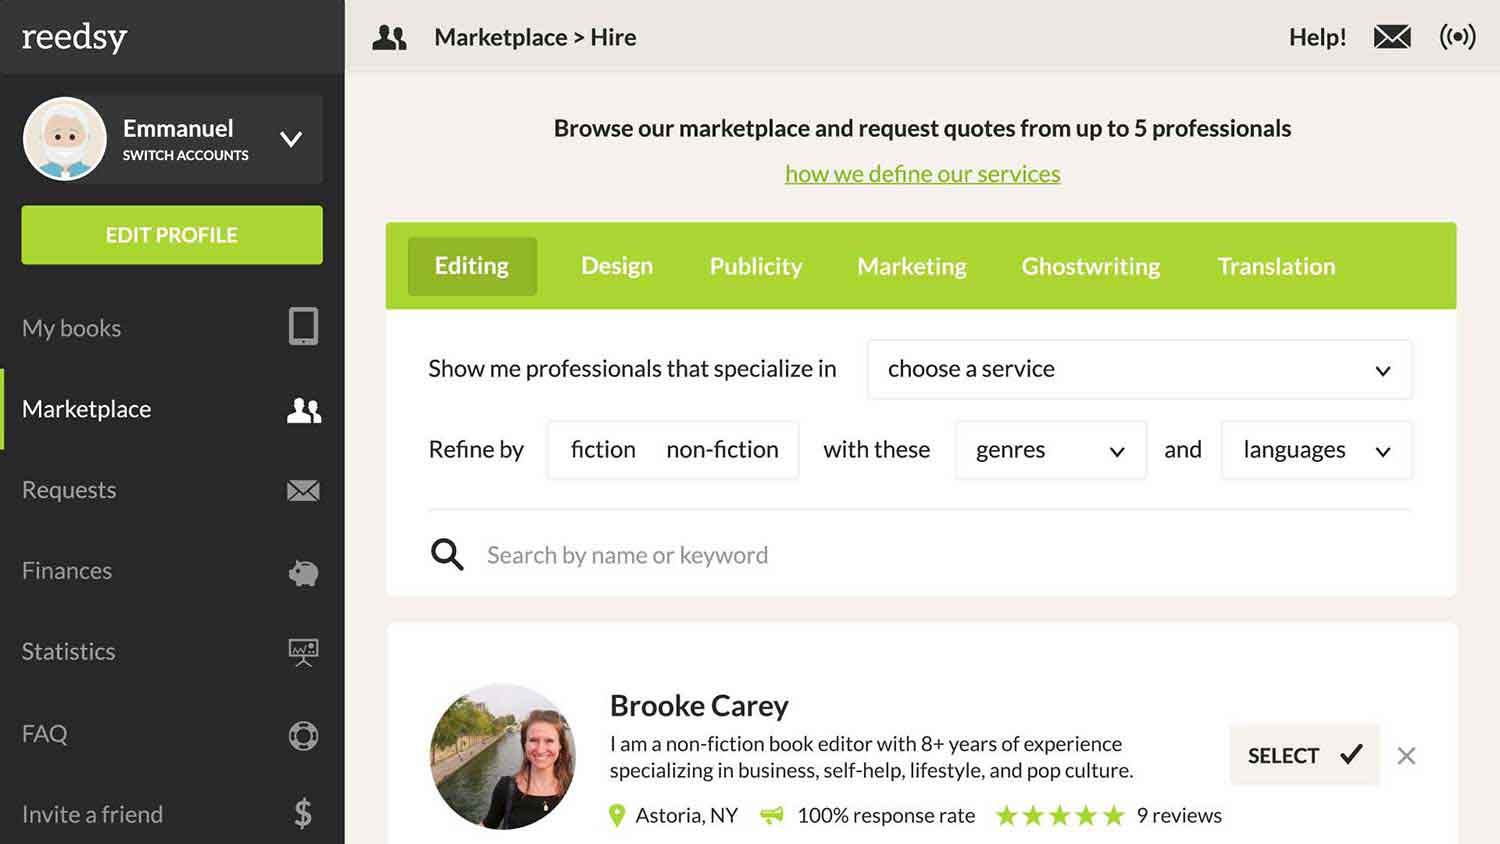 How to find editors, book designers and marketers on the Reedsy marketplace.